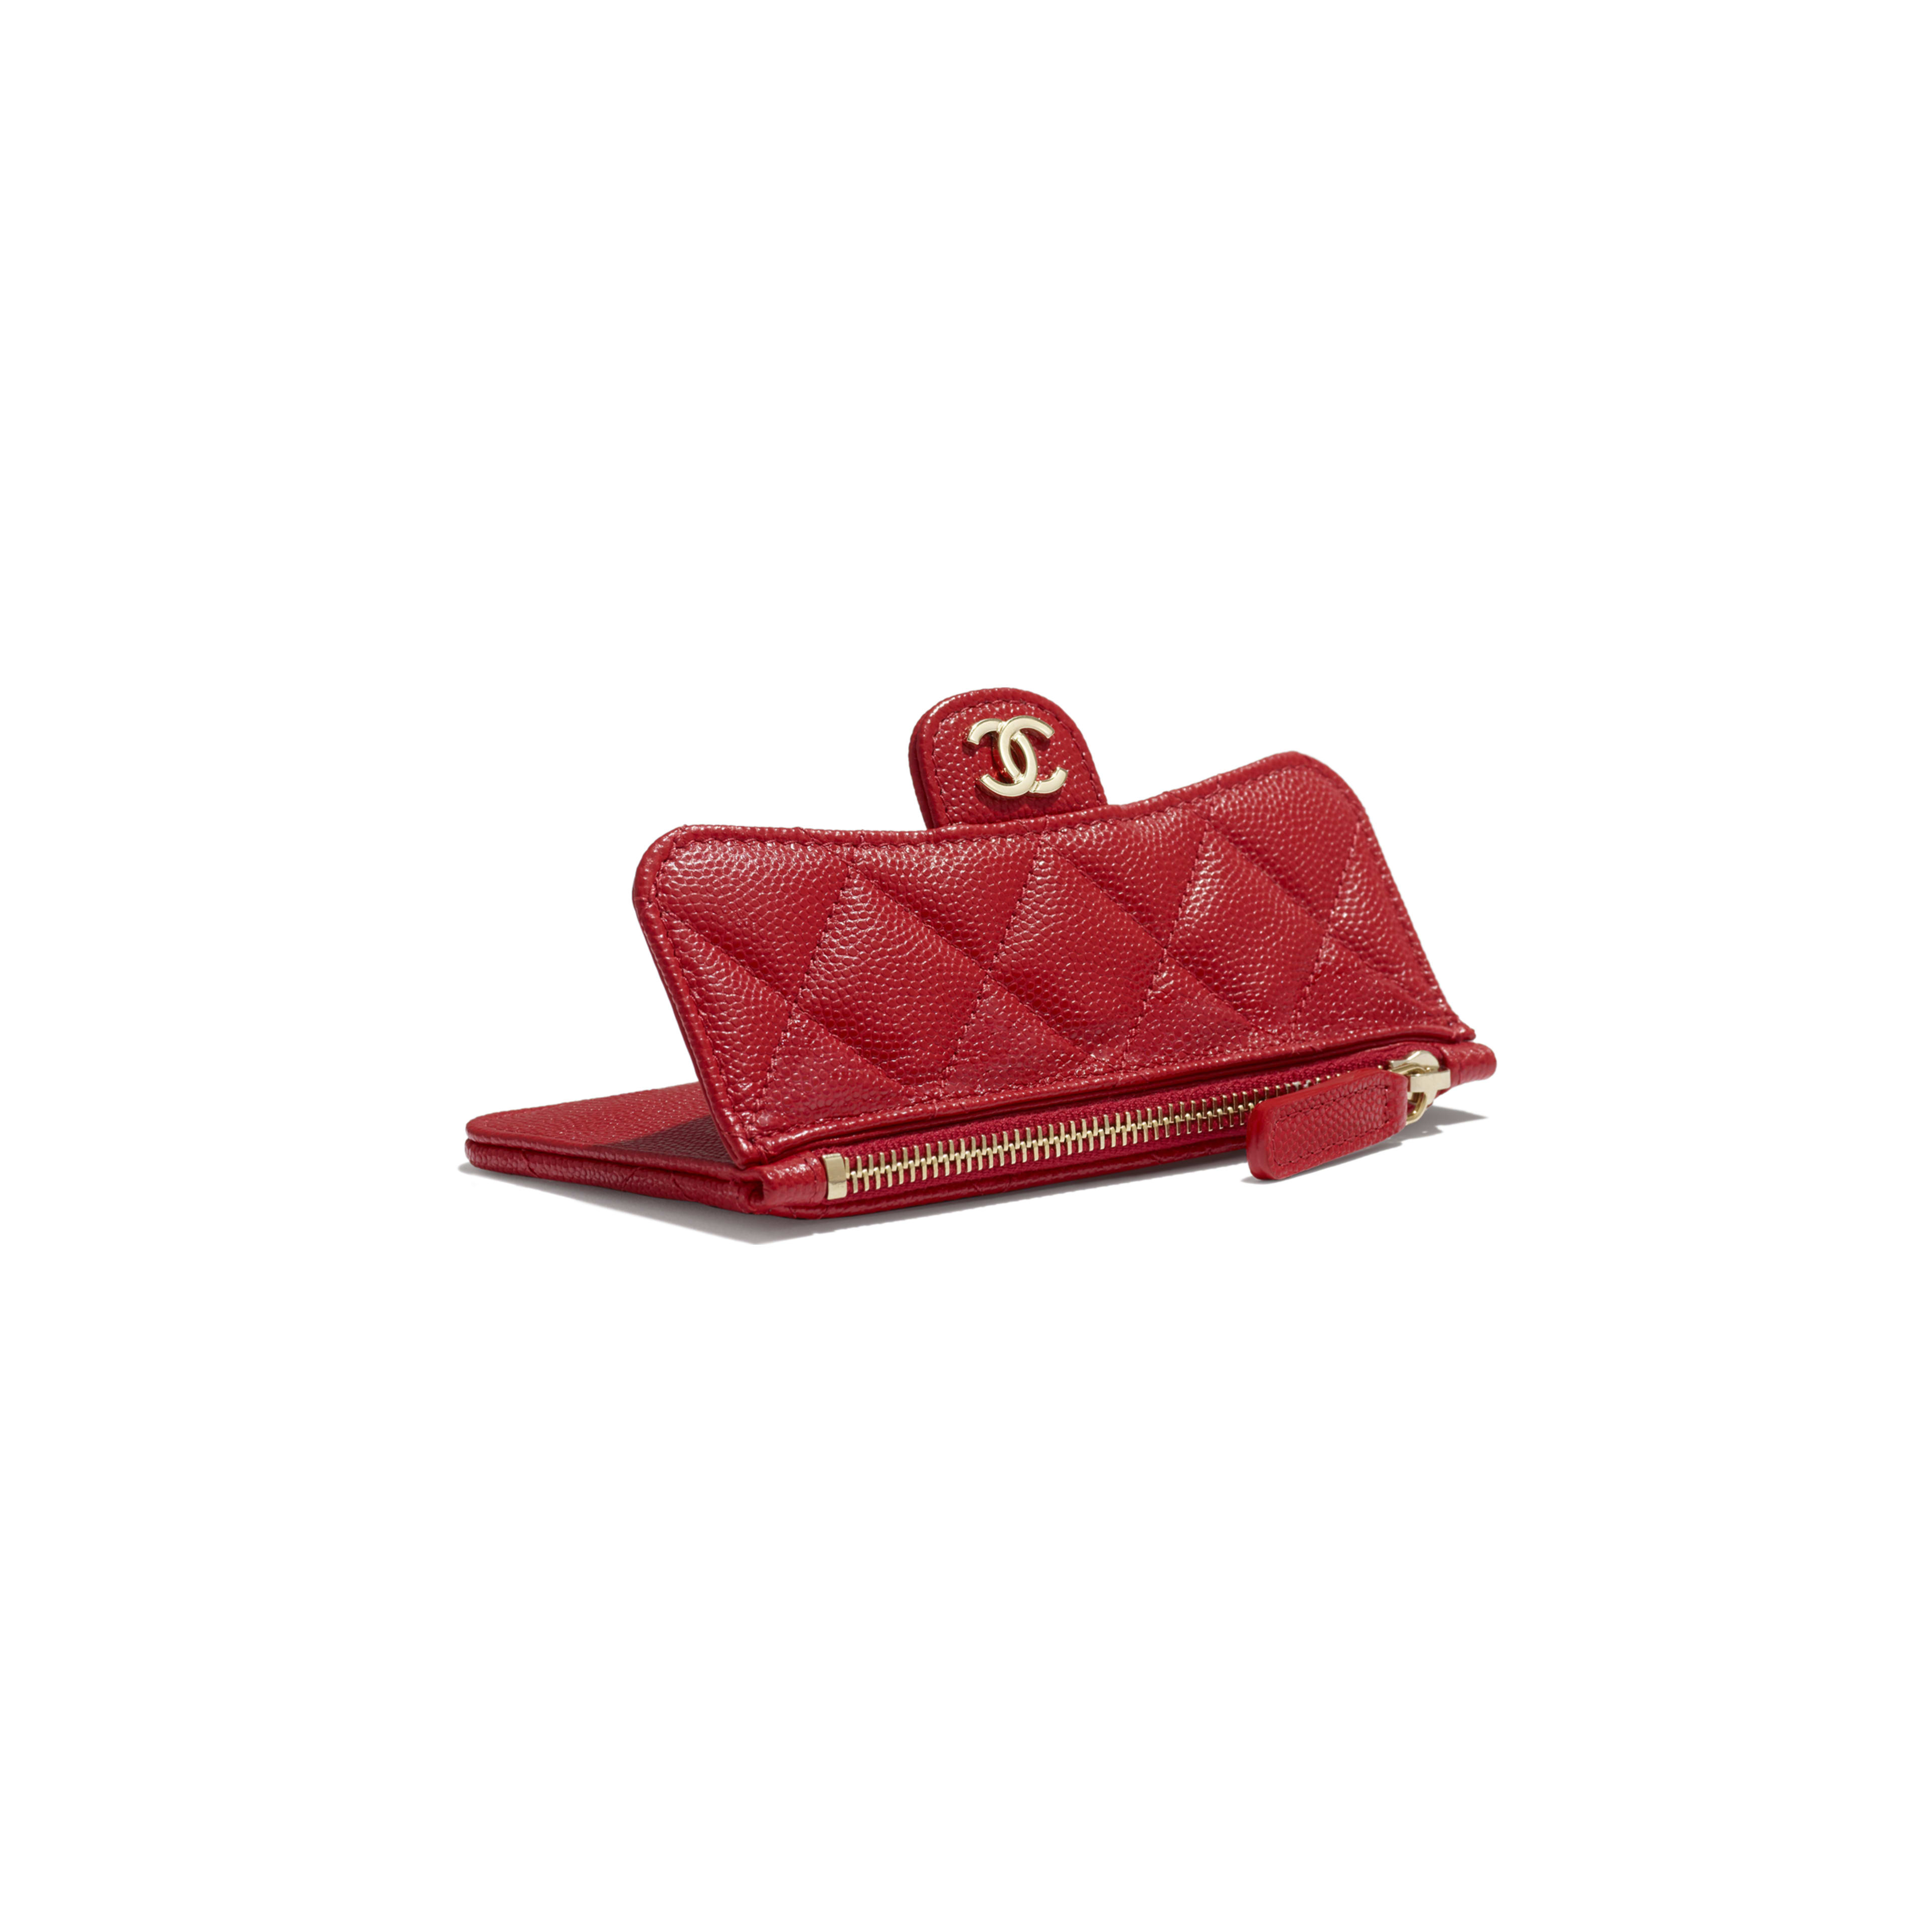 Classic Card Holder - Red - Grained Calfskin & Gold-Tone Metal - Extra view - see full sized version